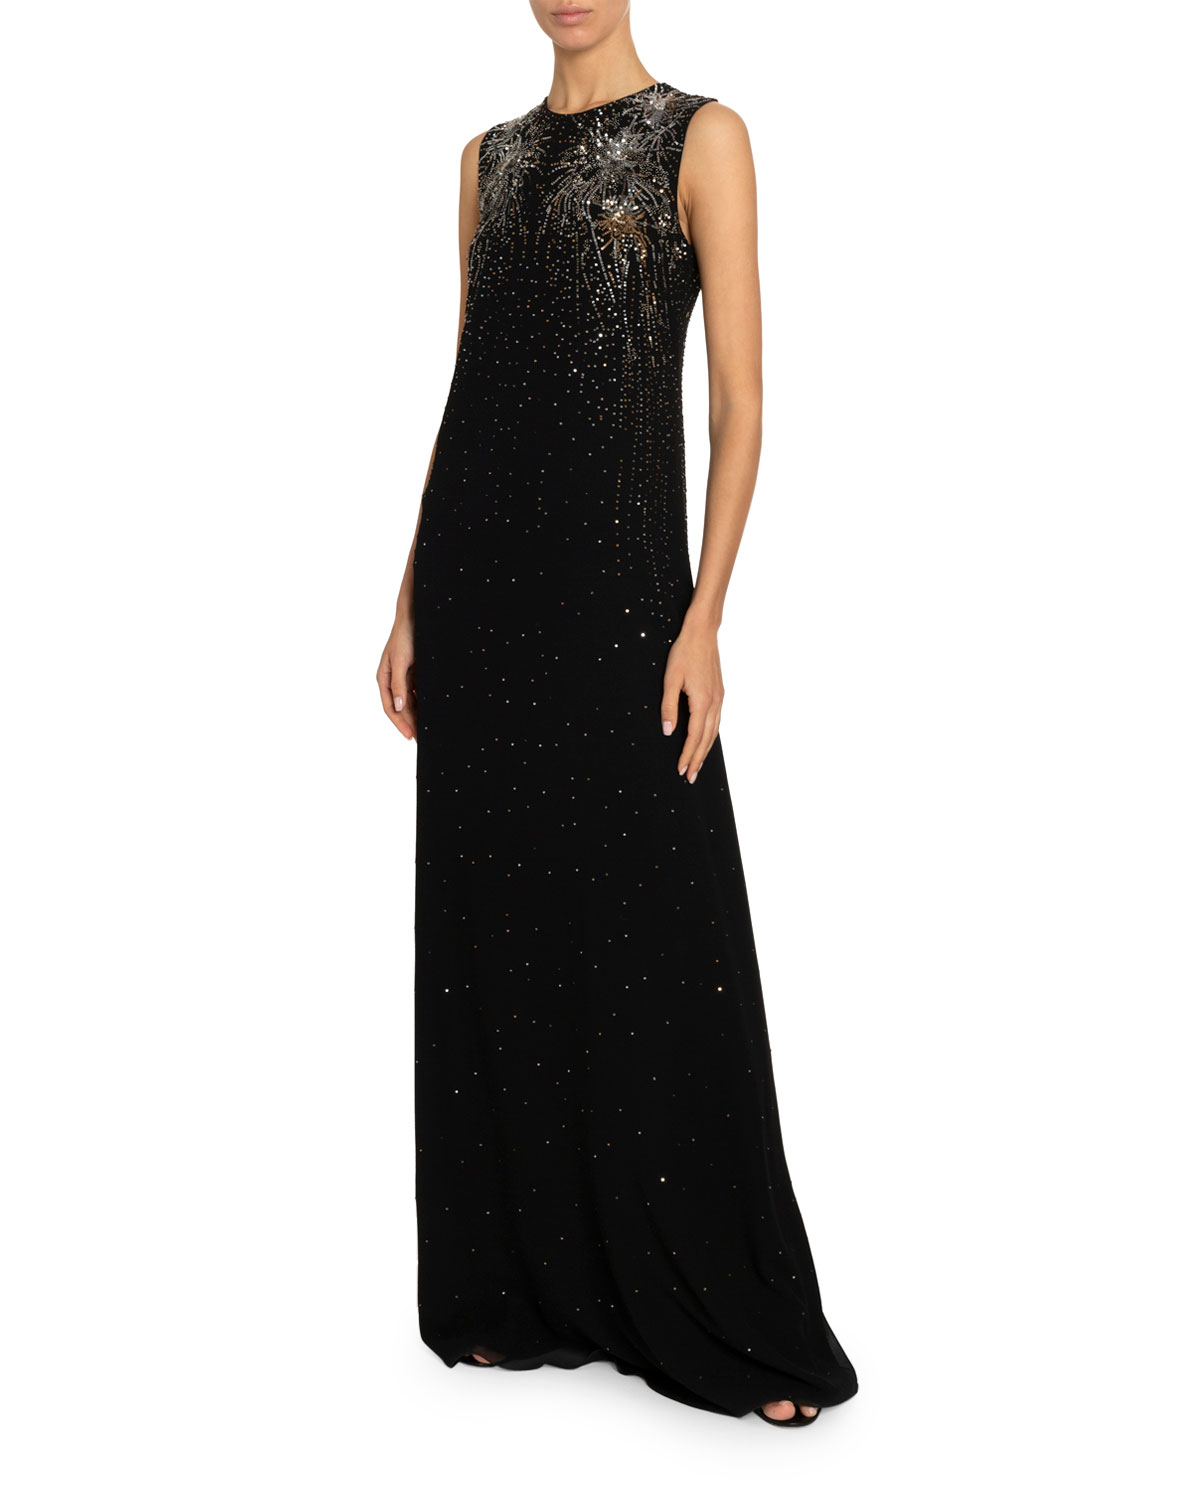 Givenchy Tops FIREWORK-BEADED COLUMN GOWN